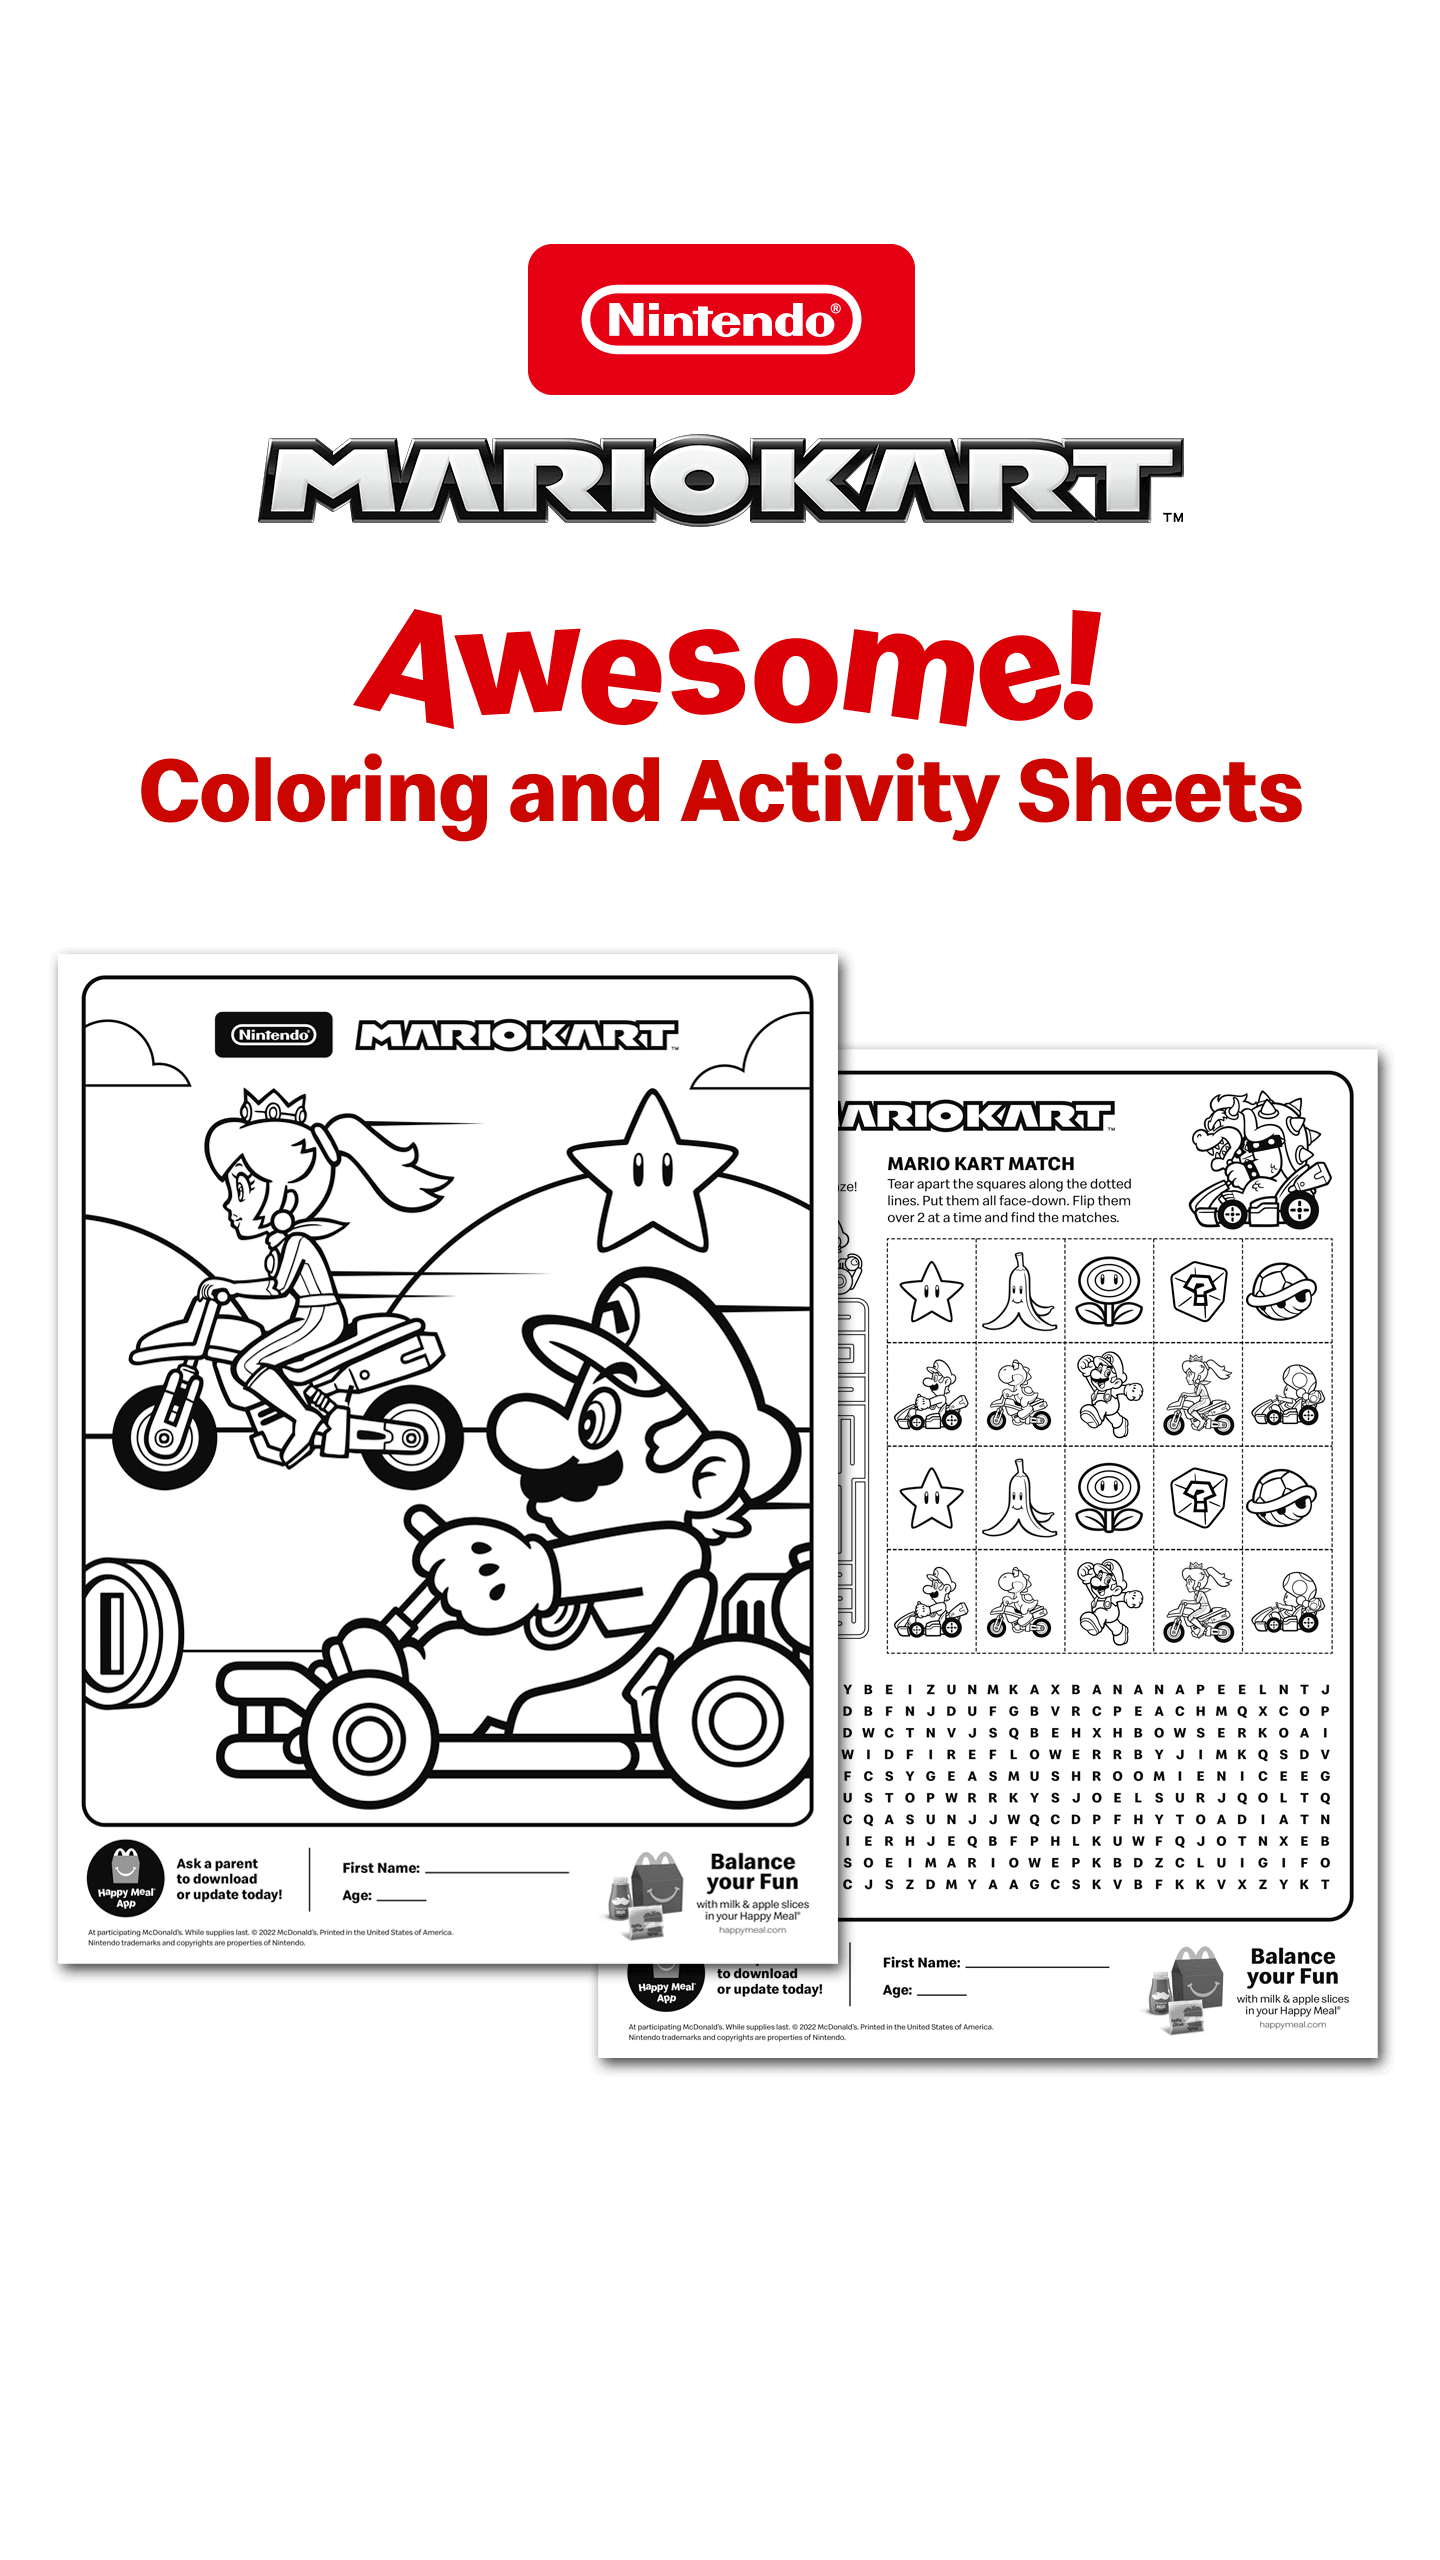 Coloring and Activity Sheets!